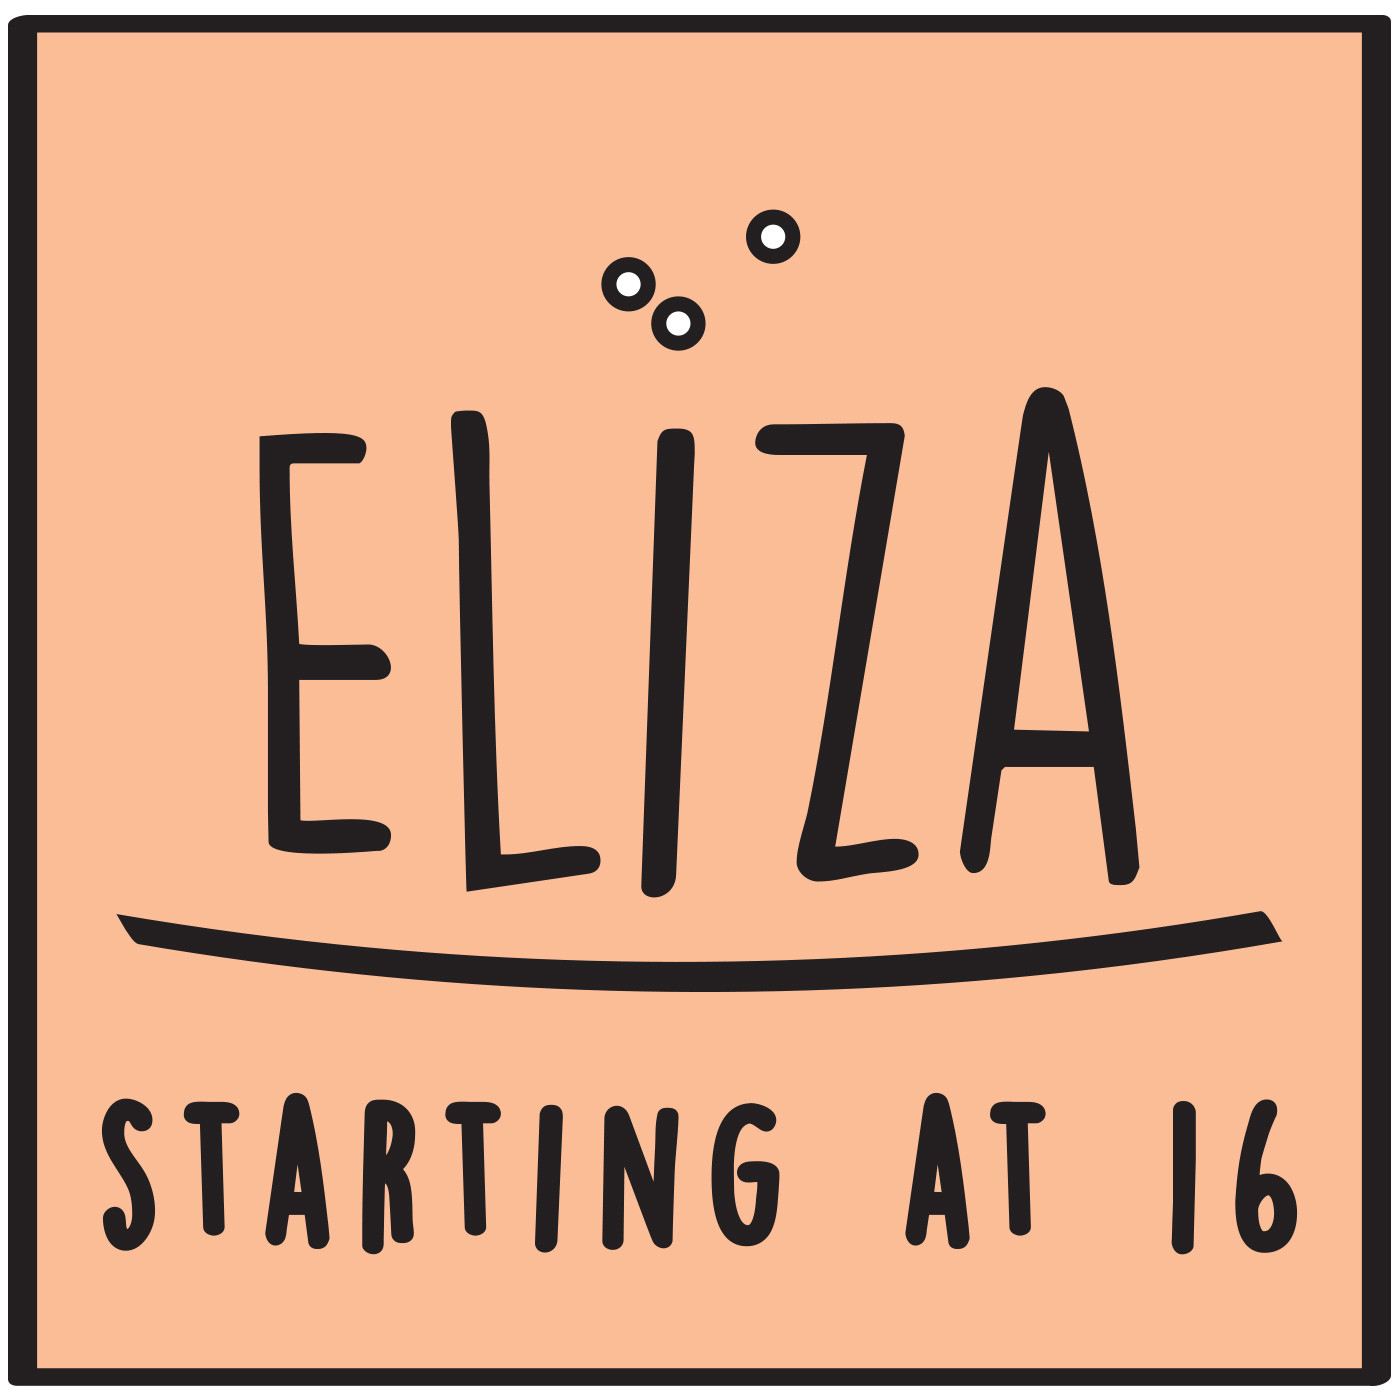 Eliza Starting at 16